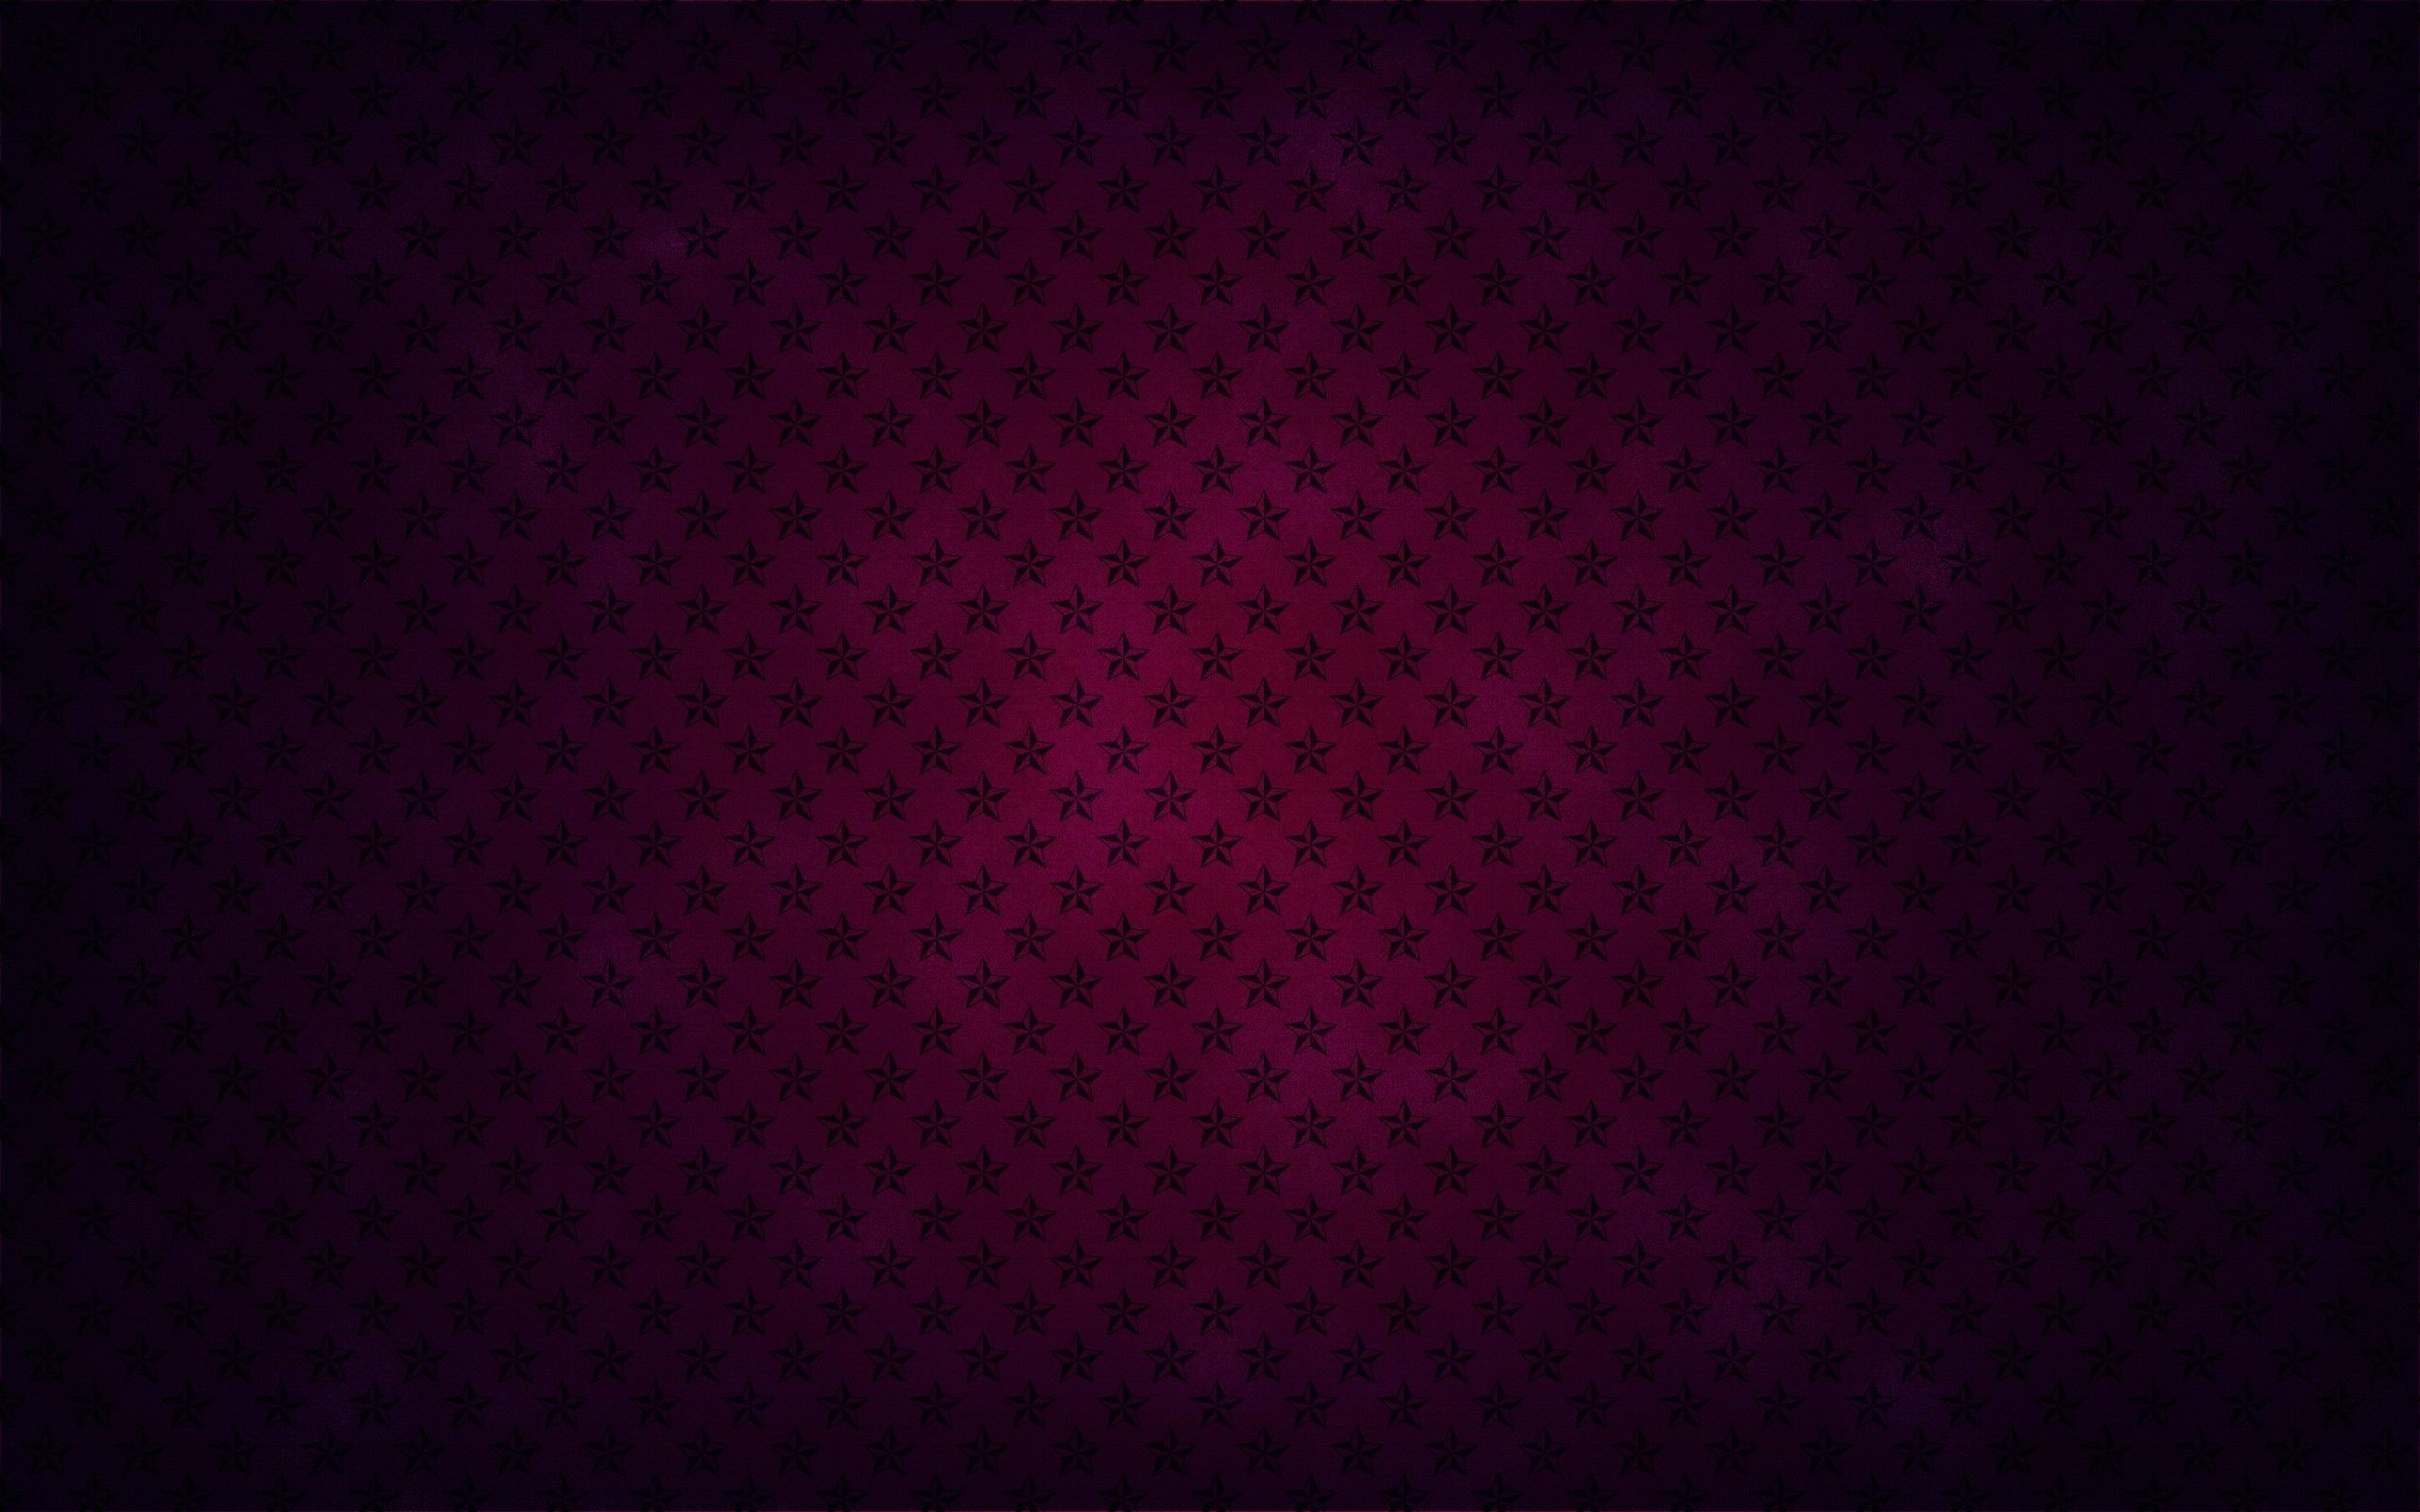 Plain Black Backgrounds Wallpapers